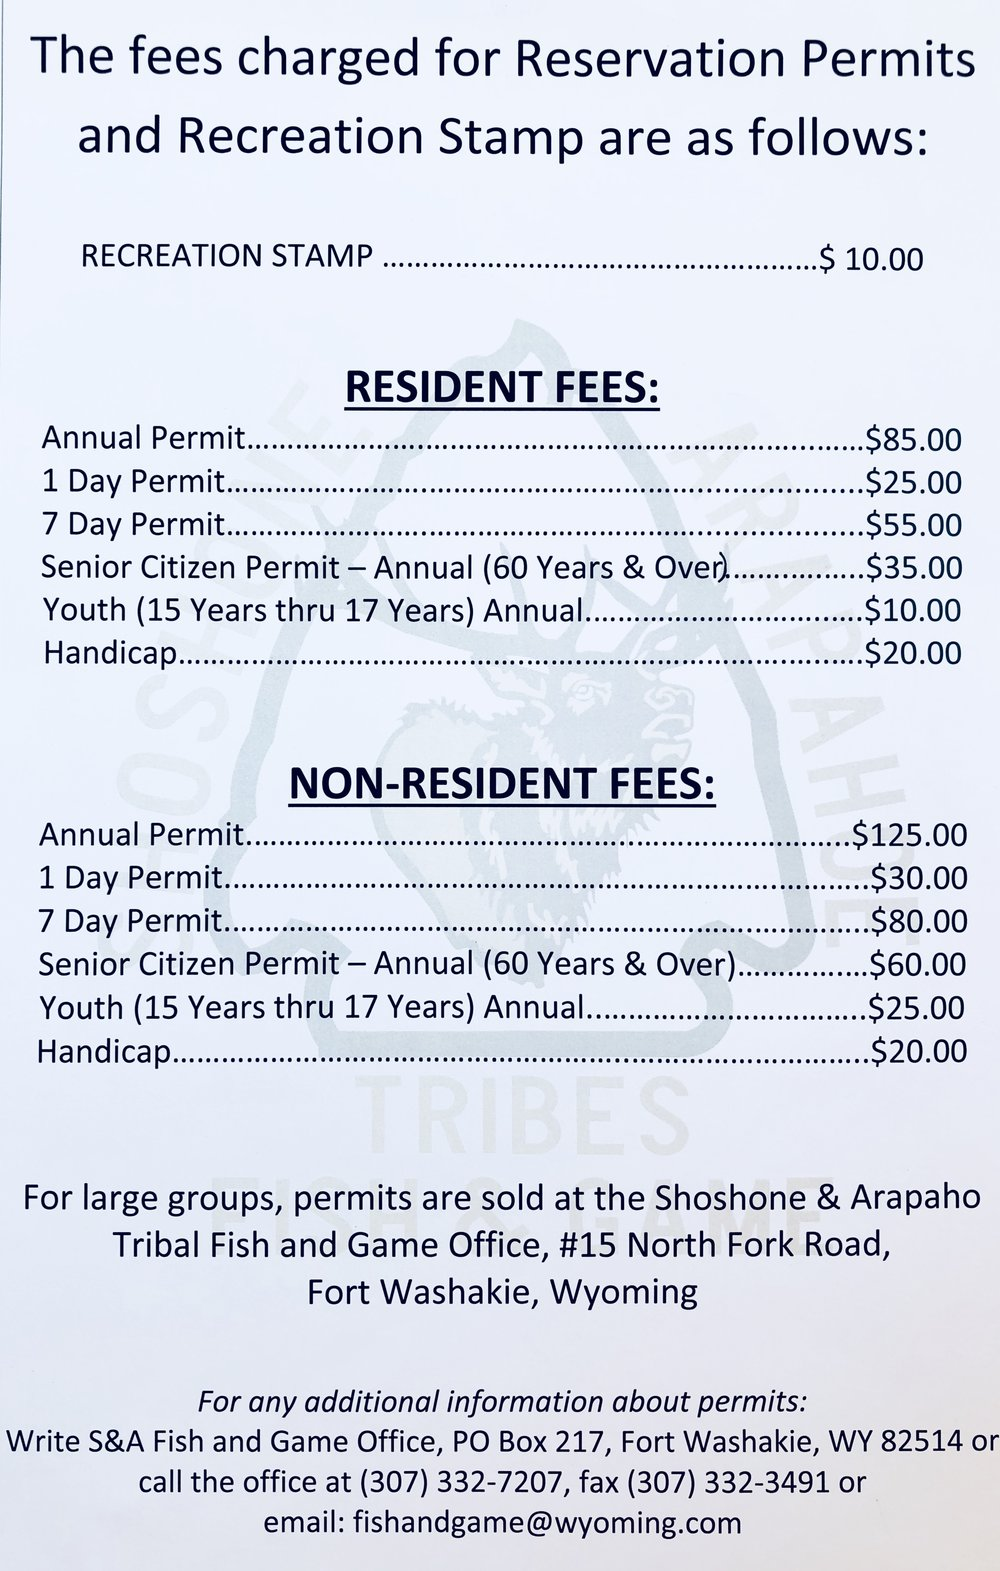 Wind River Indian Reservation Fishing Permit and Recreation Stamp Fees for 2018